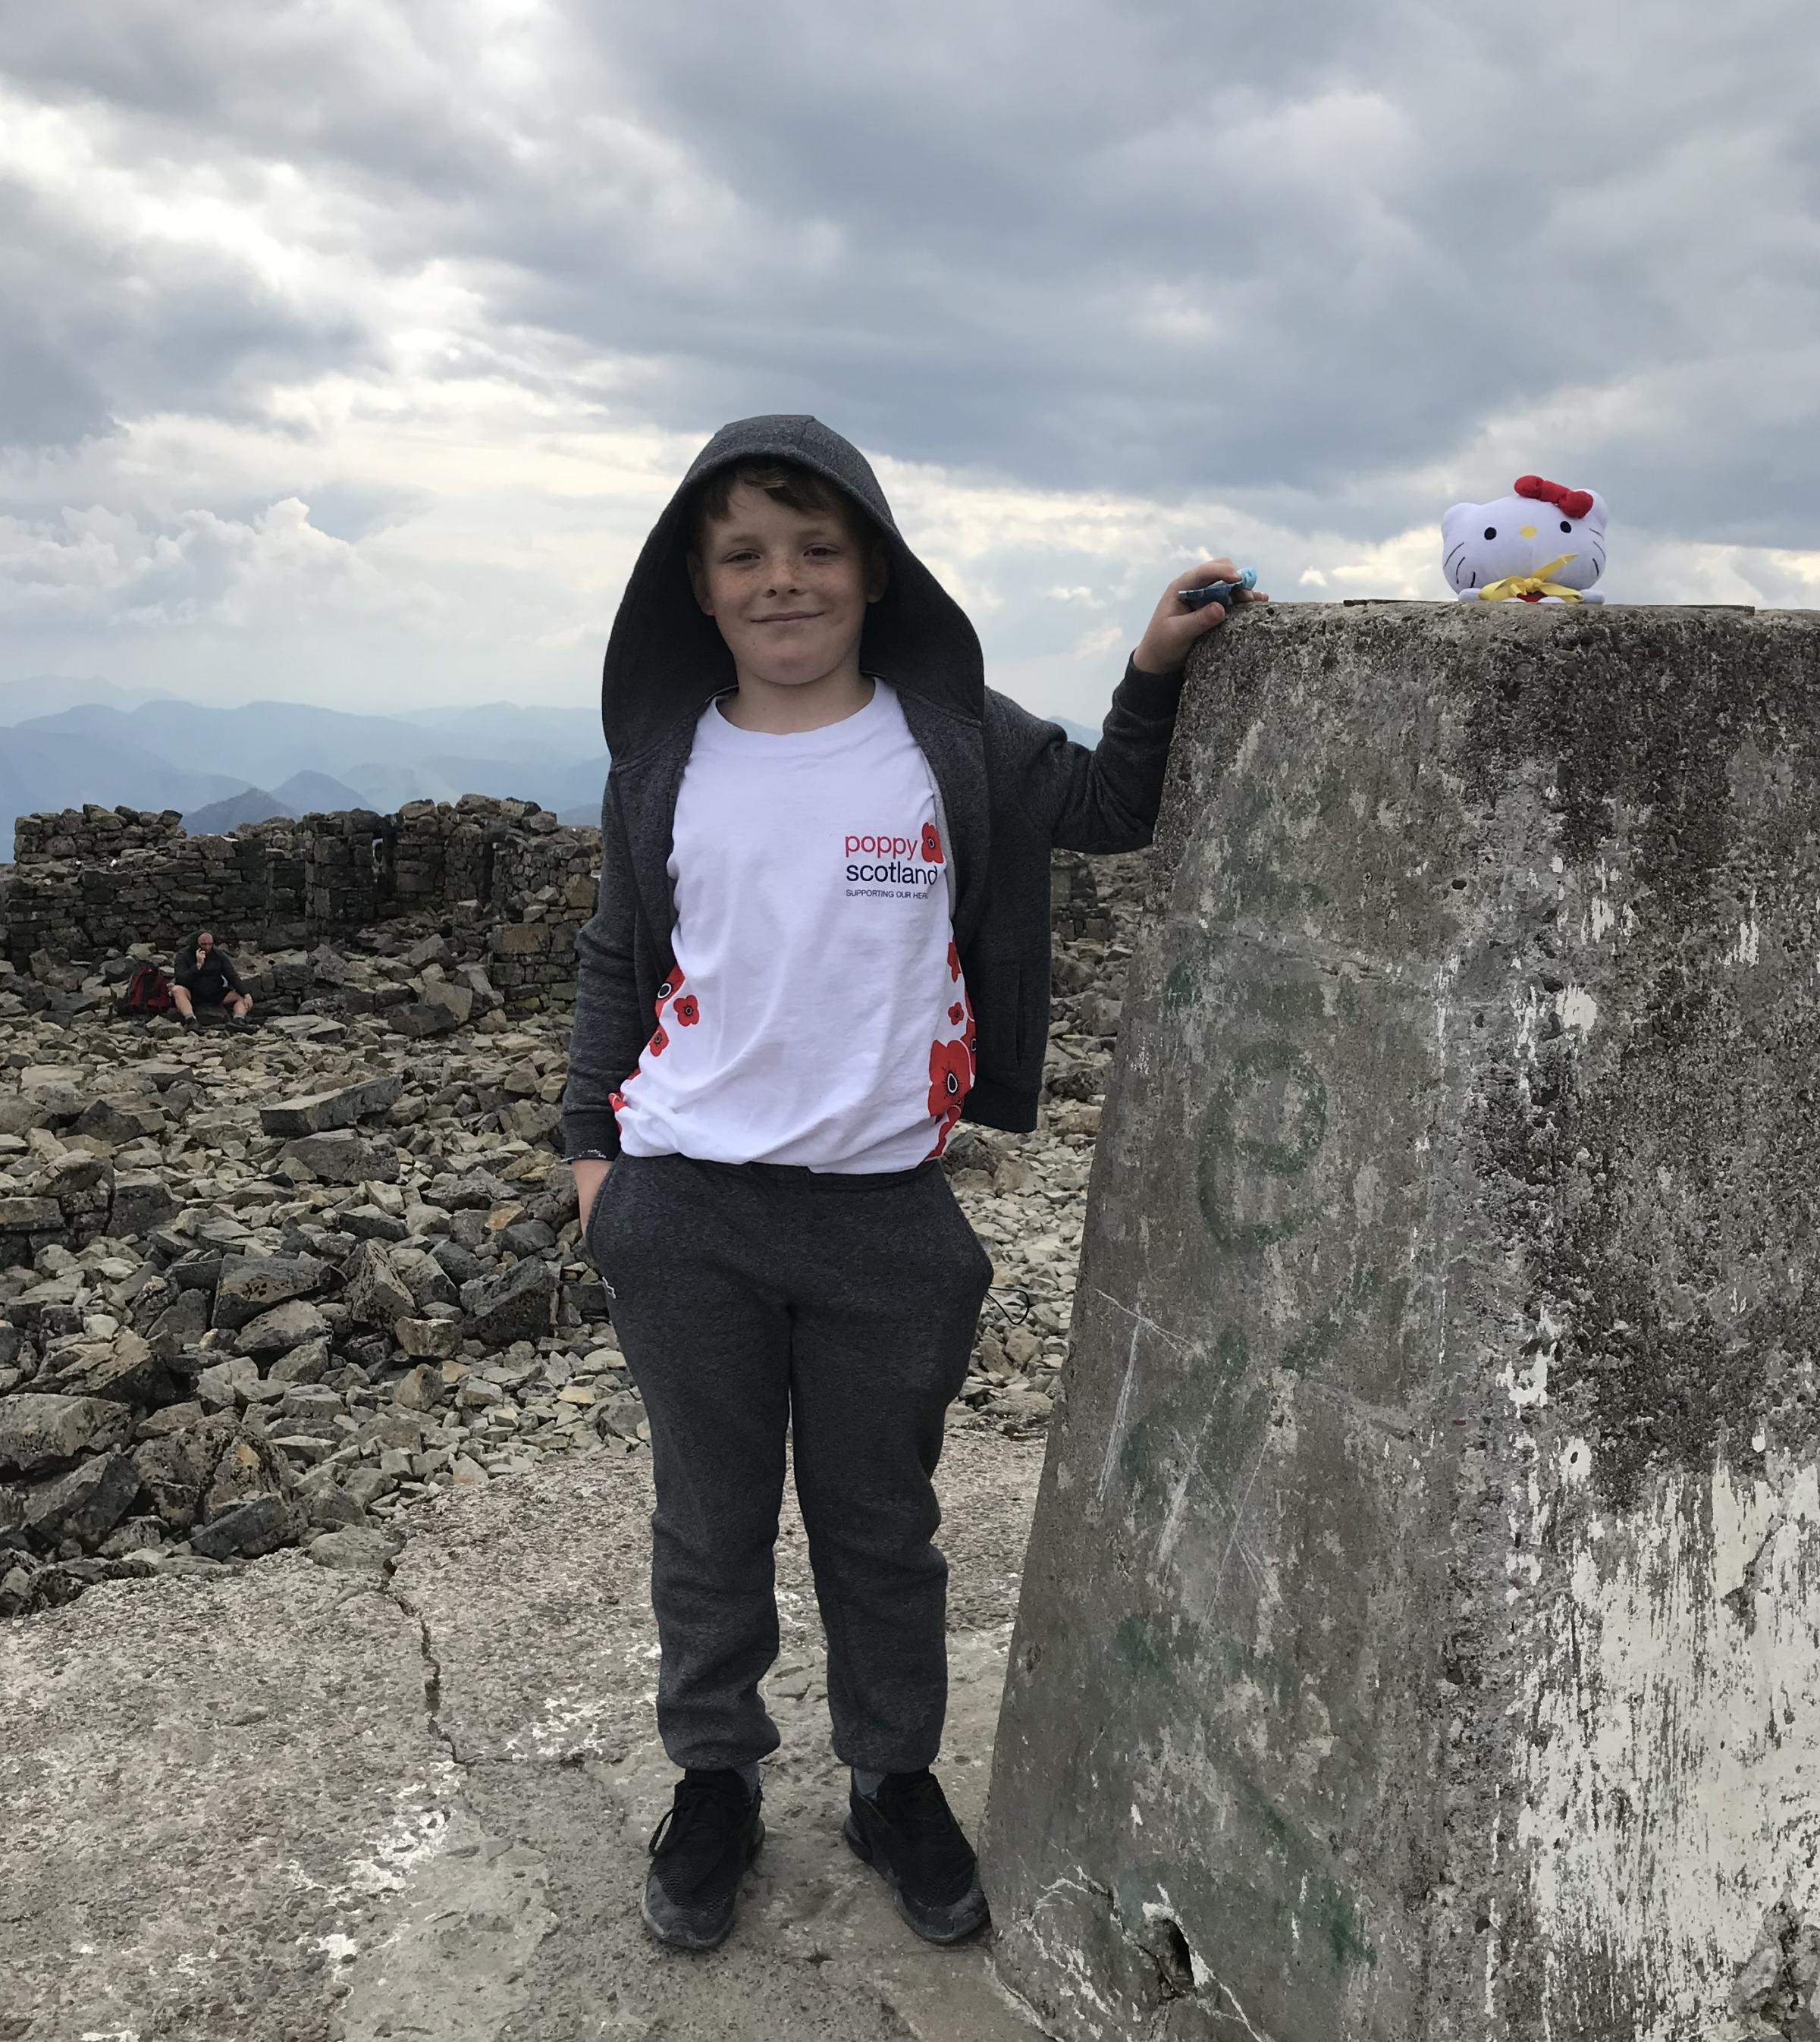 Soldiers inspire Jack, 8, to hit the heights on Ben Nevis